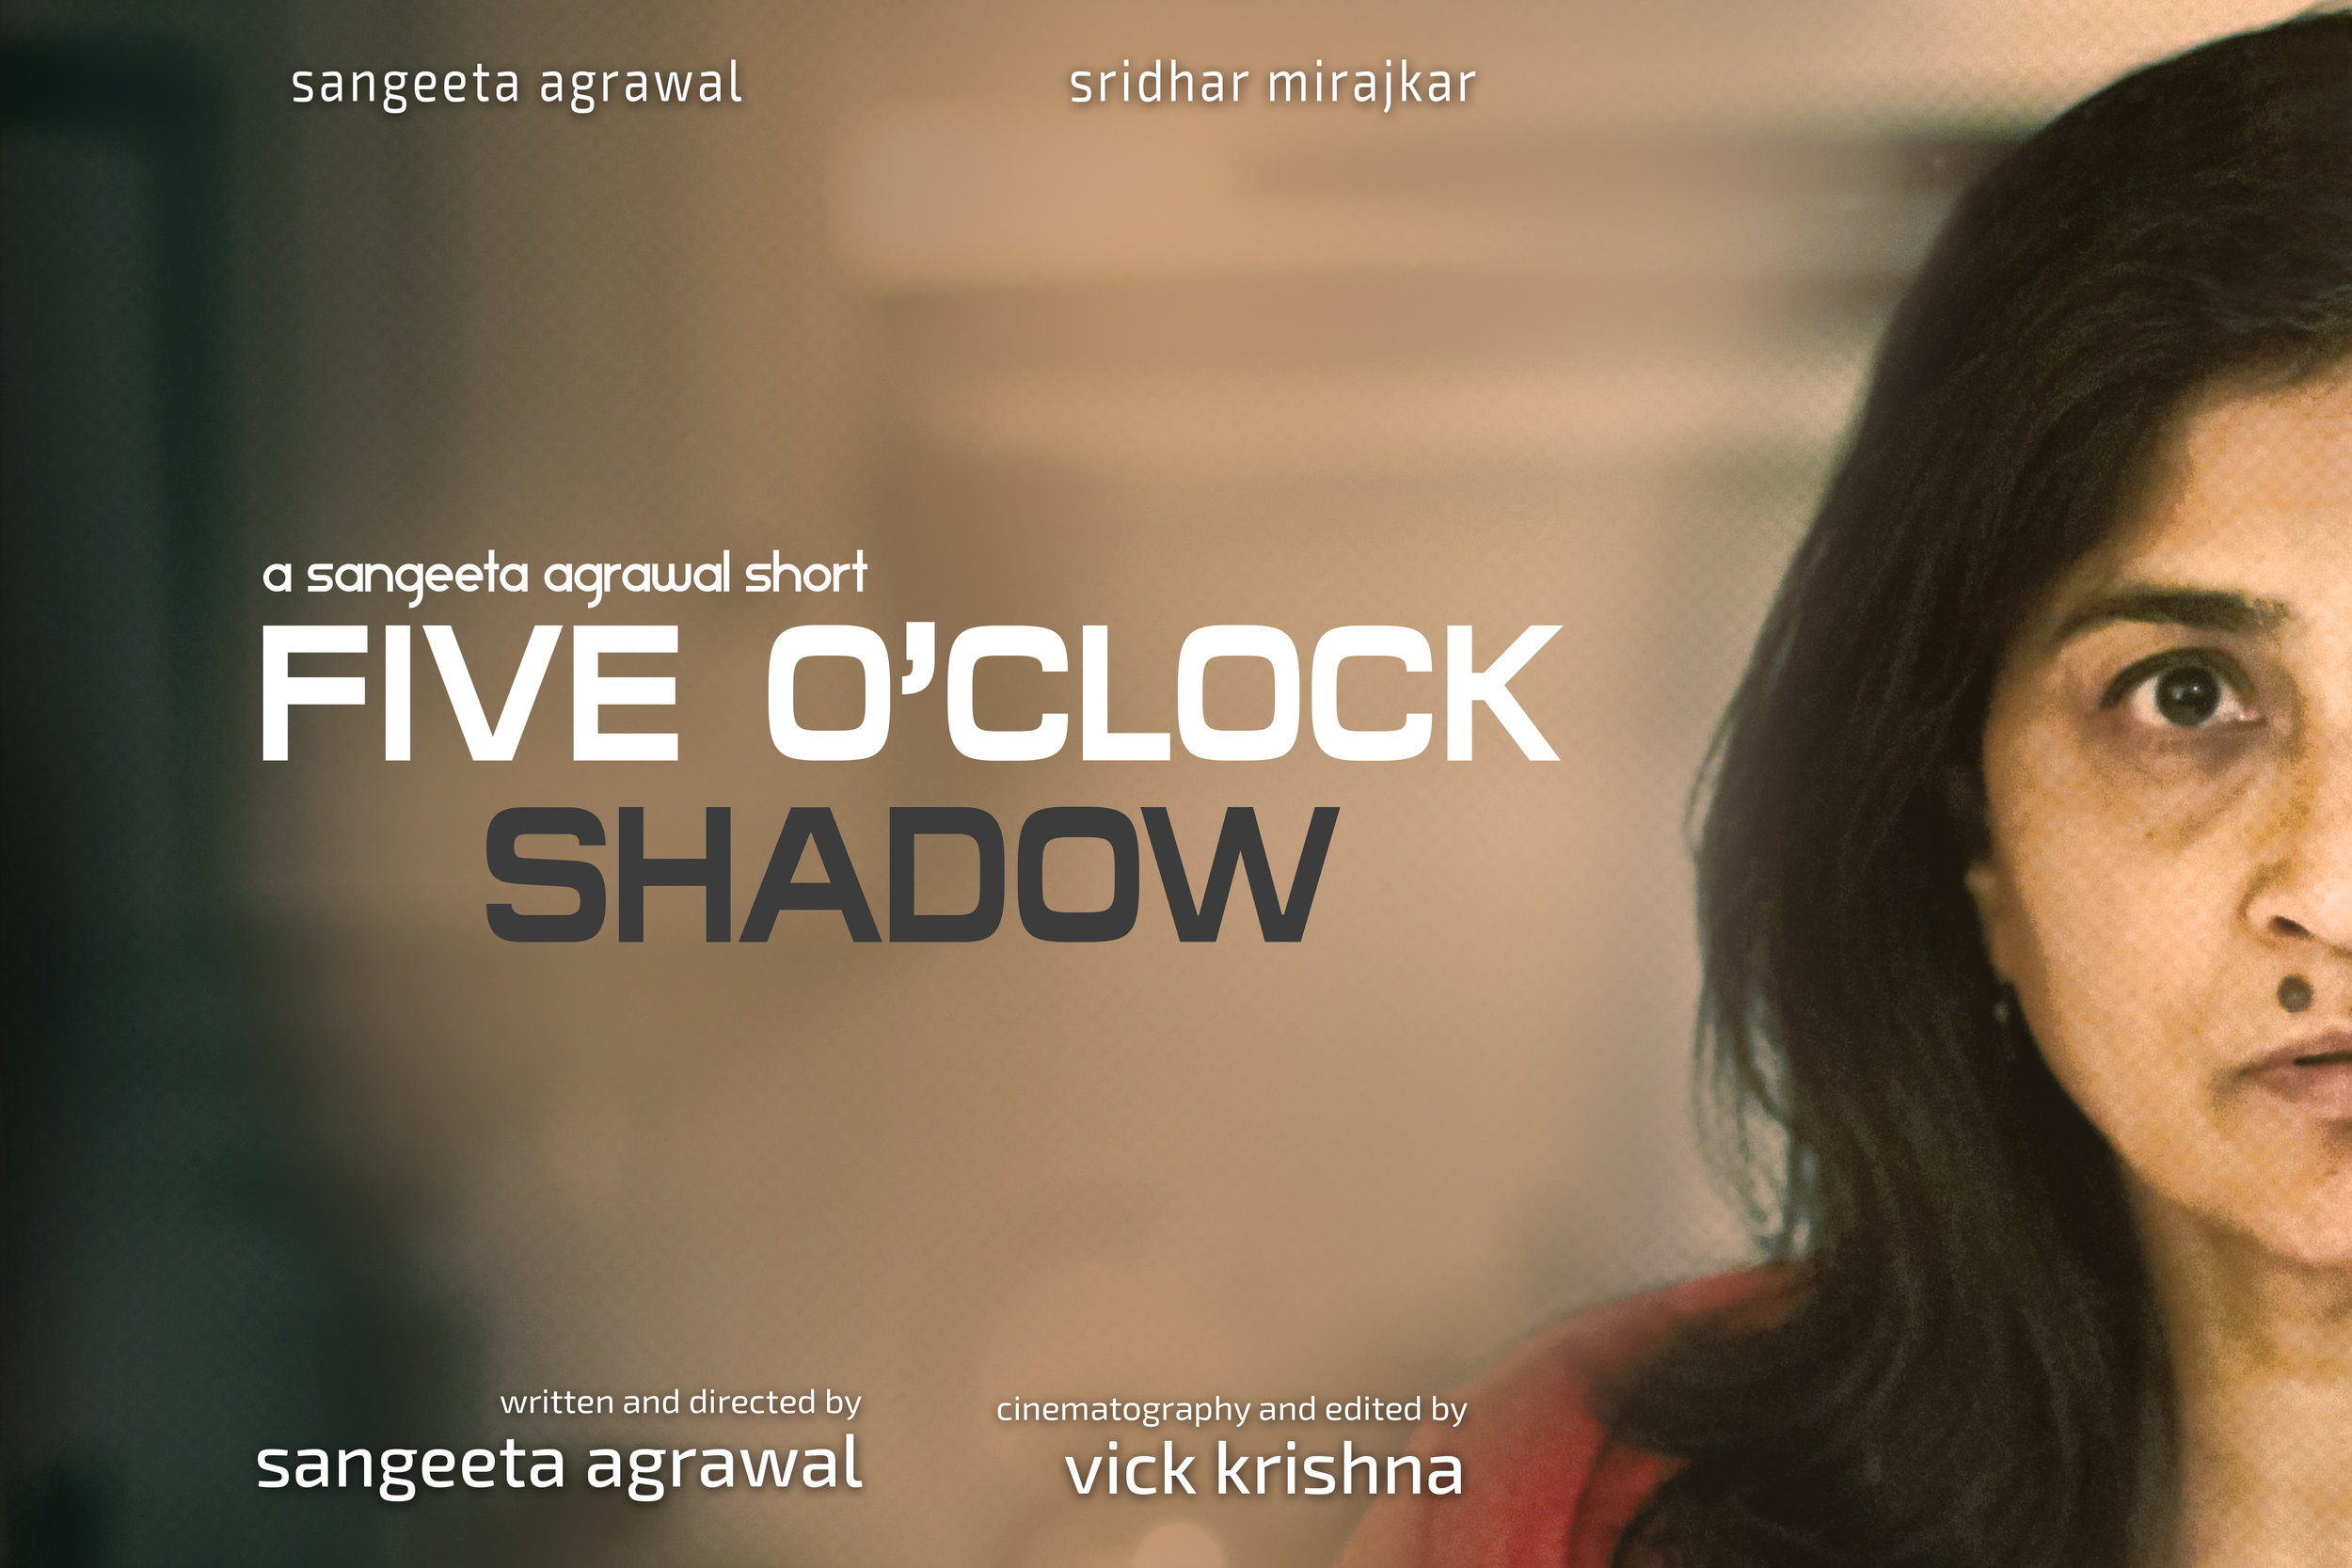 Five O'Clock Shadow - 7:14 mins. USA    D irector: Sangeeta Agrawal.  Five O'Clock Shadow,  is the story of an Indian-American mother who is the victim of racial abuse. Her worst fear rises to the surface and for the first time ever, she asks the question: Do we really belong here?